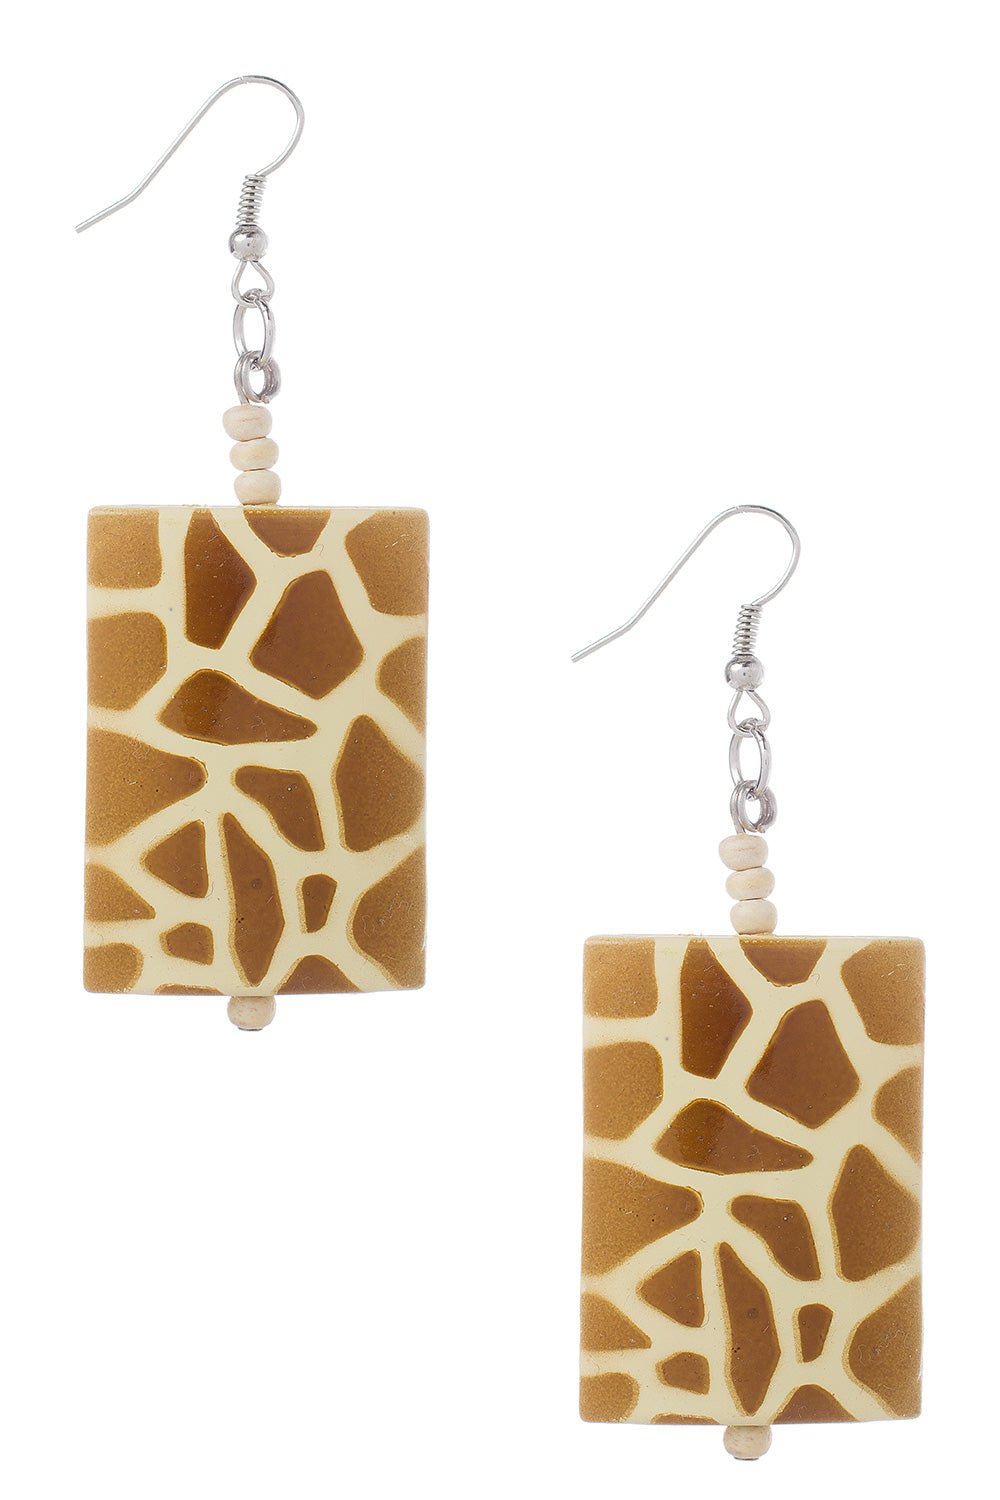 Type 3 Safari Style Earrings